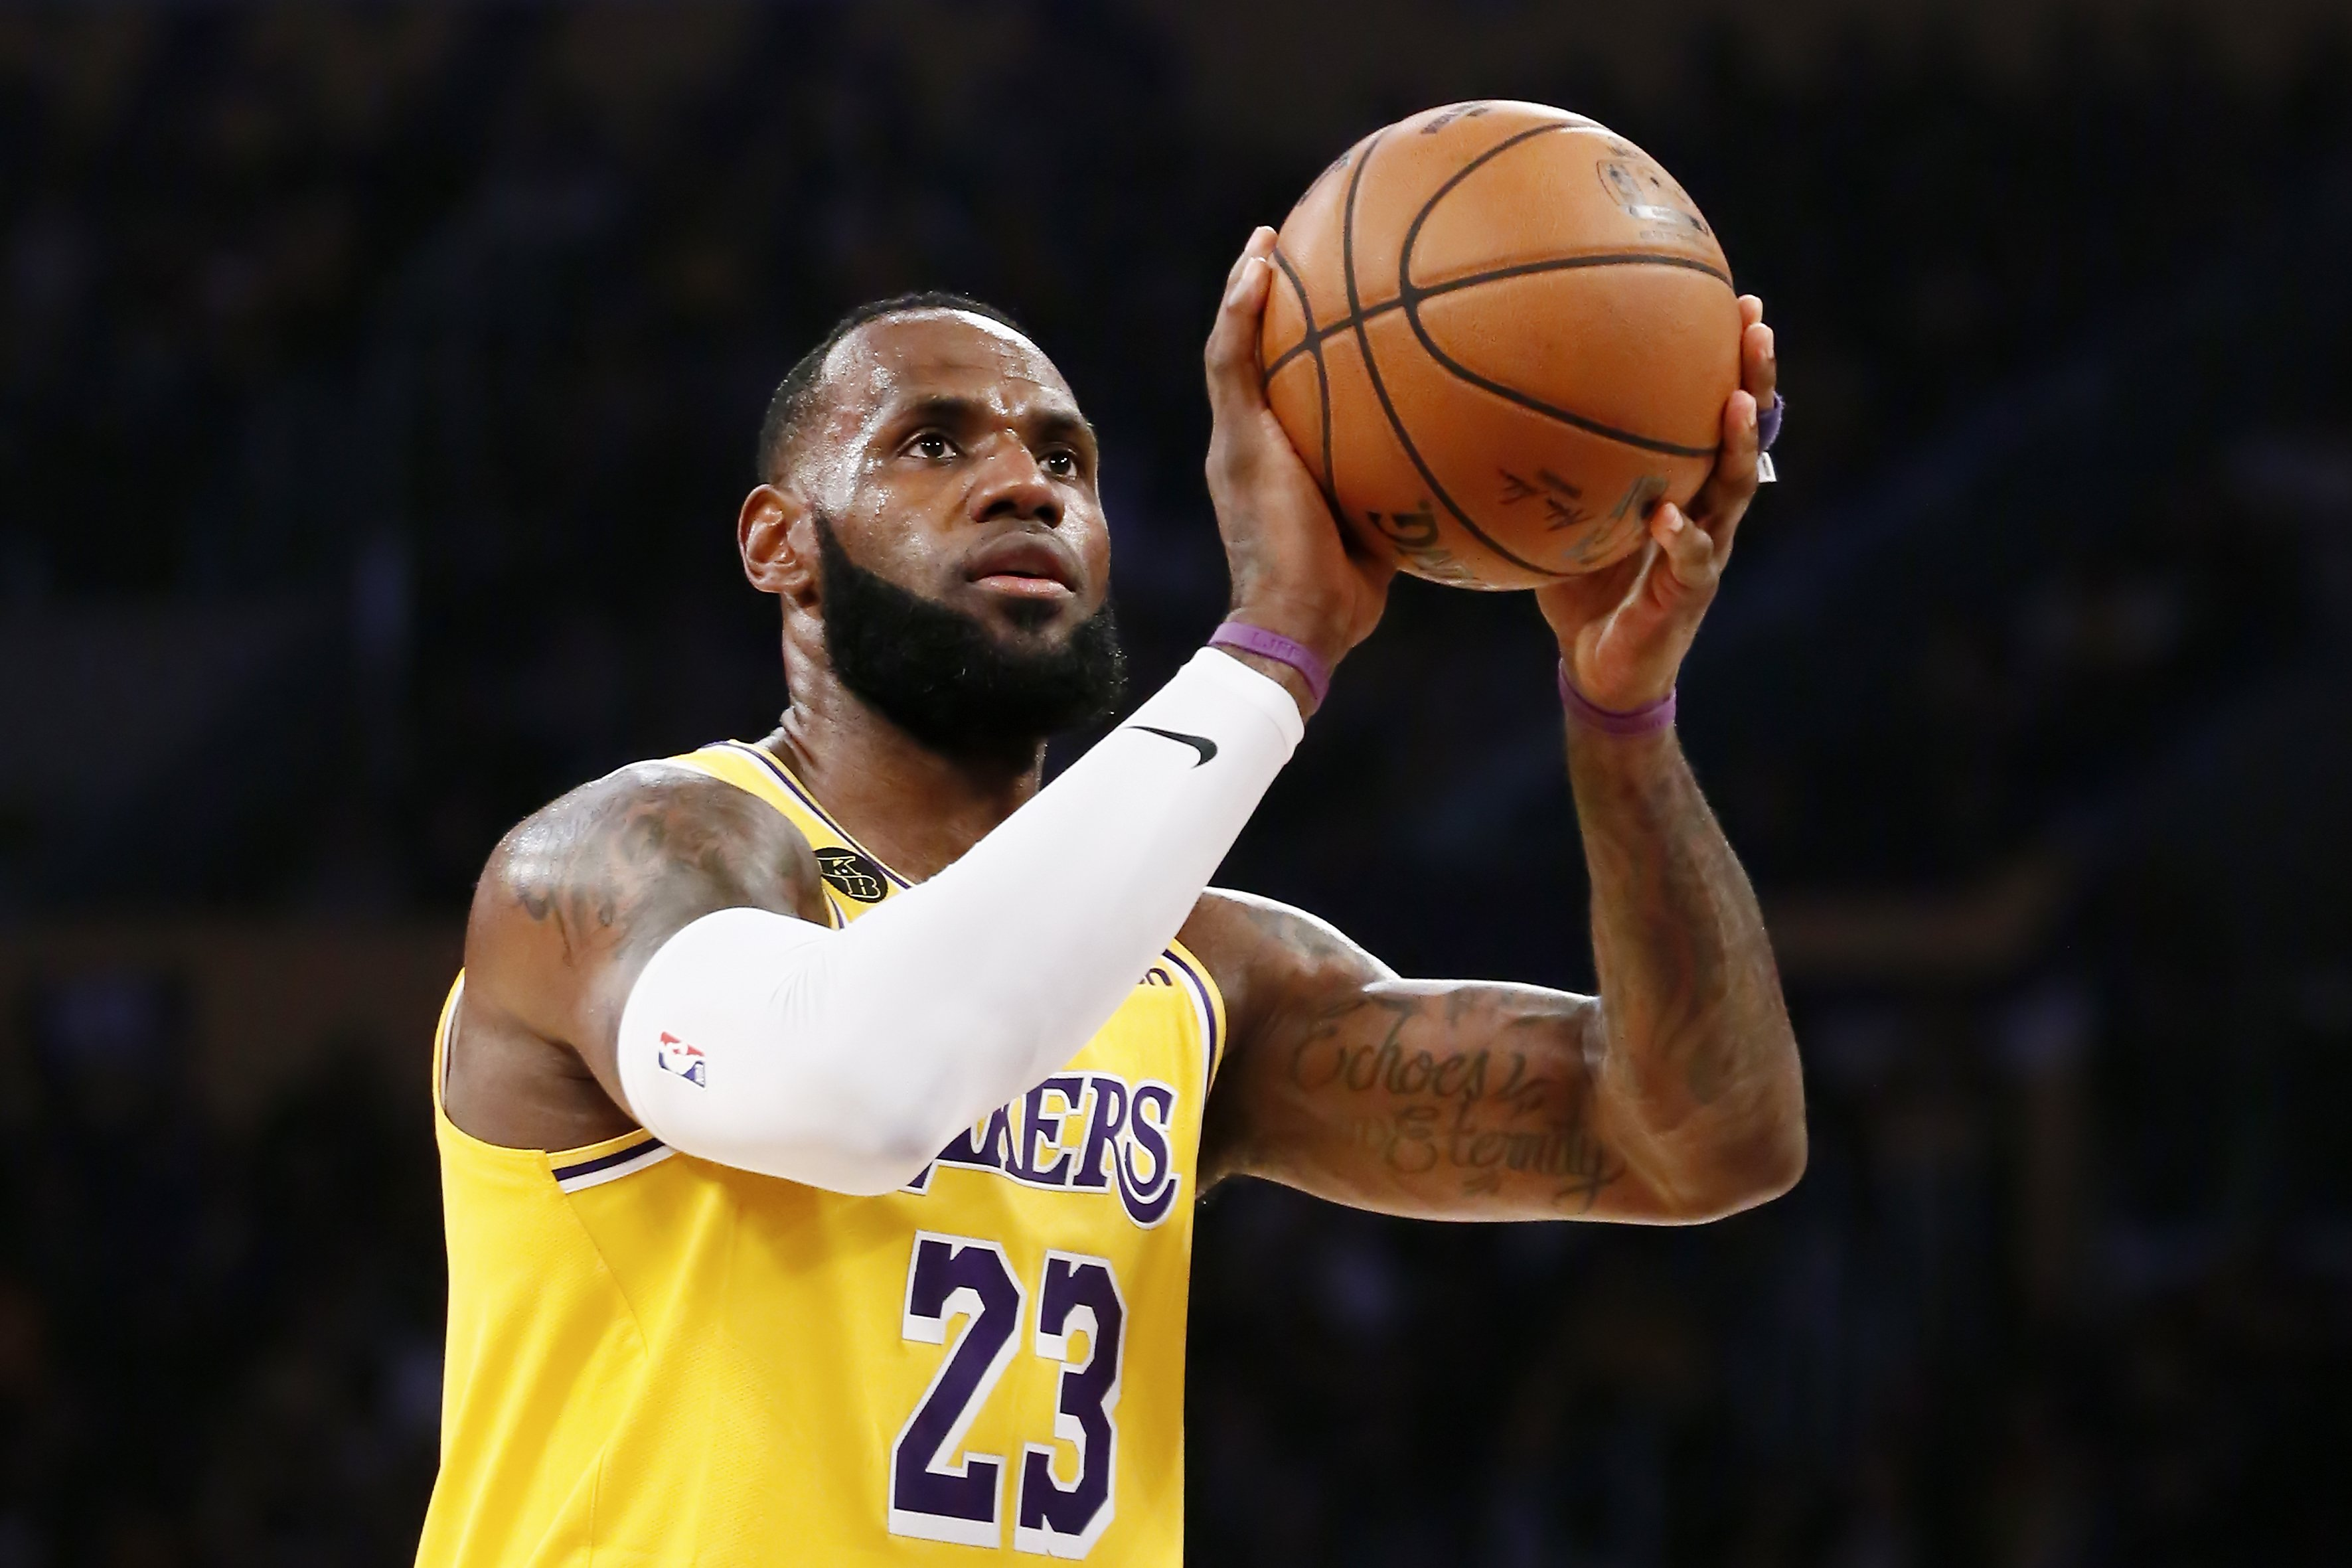 LeBron James during a game against the Brooklyn Nets at the Staples Center on March 10, 2020. | Photo: Getty Images